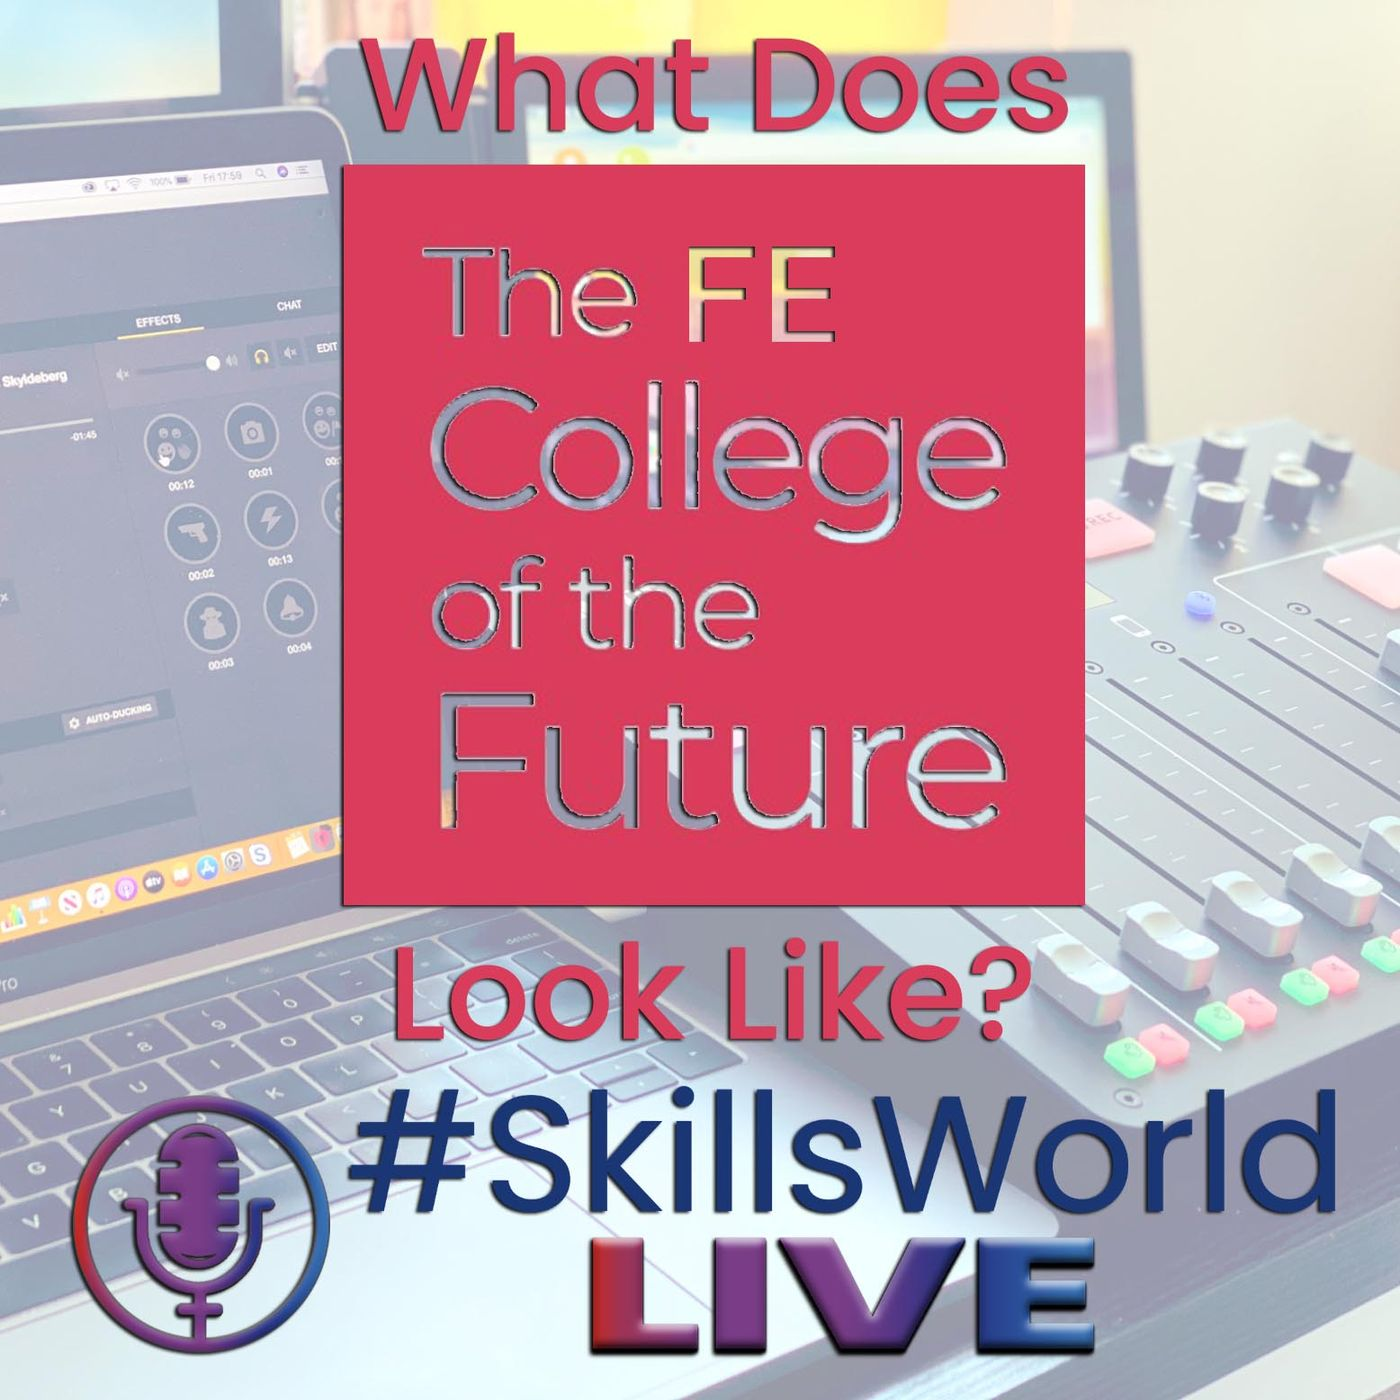 What does the FE College of the future look like? Episode 25: #SkillsWorldLIVE